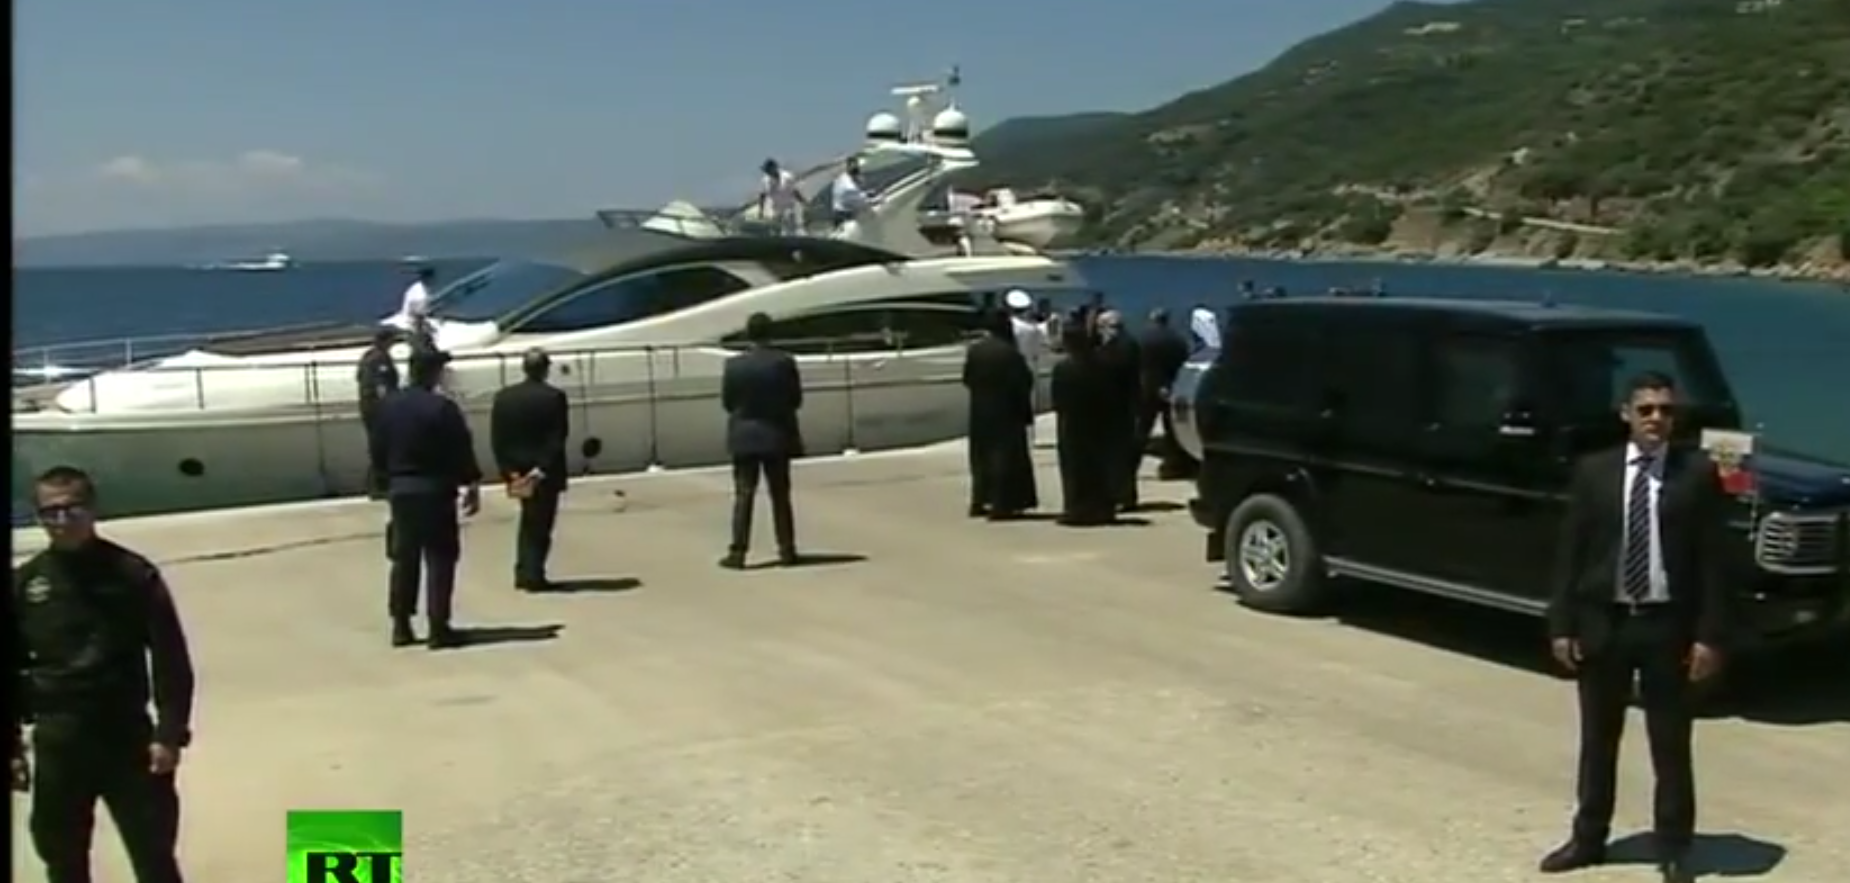 secret service with separate boat to Dafni in the background  Putins boat.